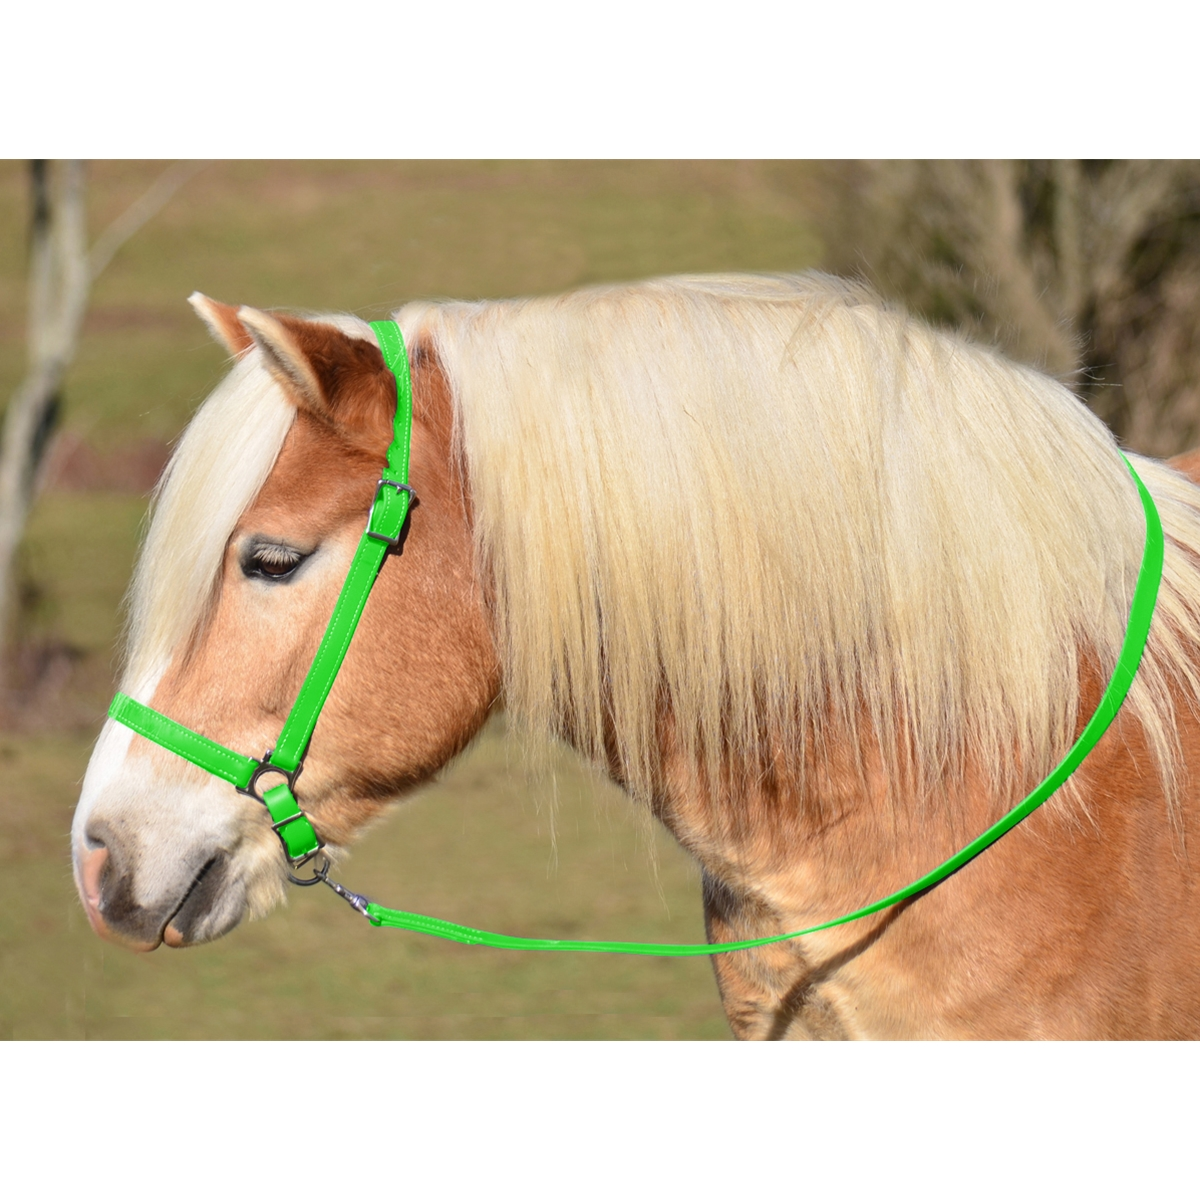 Lime Green Grooming Halter Lead Two Horse Tack